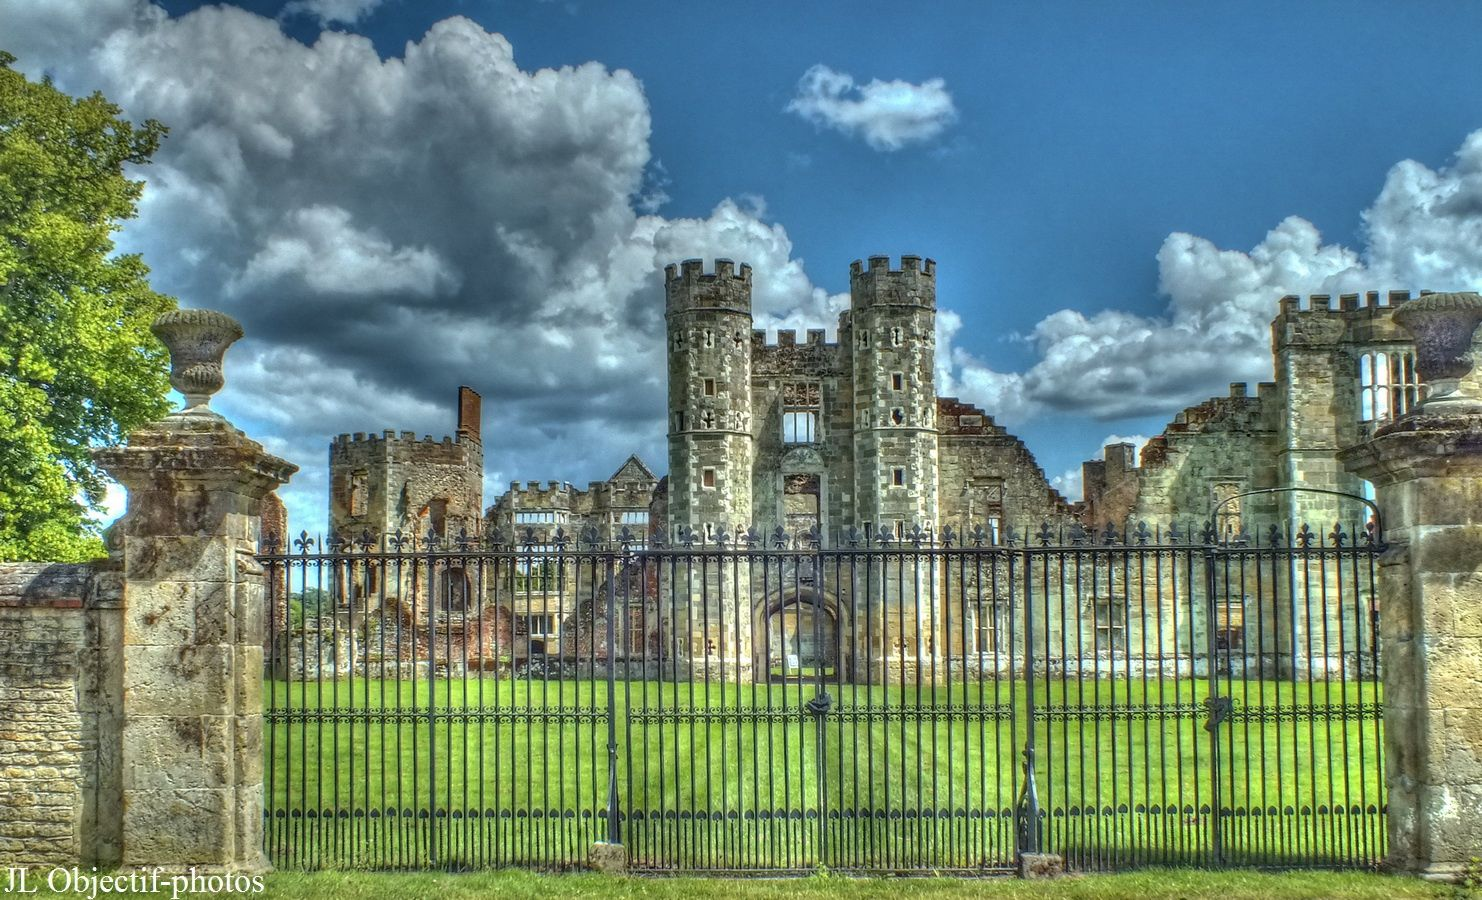 Cowdray House consists of the ruins of one of England's great Tudor houses, architecturally comparable to many of the great palaces and country houses of that time. It is situated just east of Midhurst, West Sussex standing on the north bank of the River Rother. It was largely destroyed by fire on 24 September 1793.